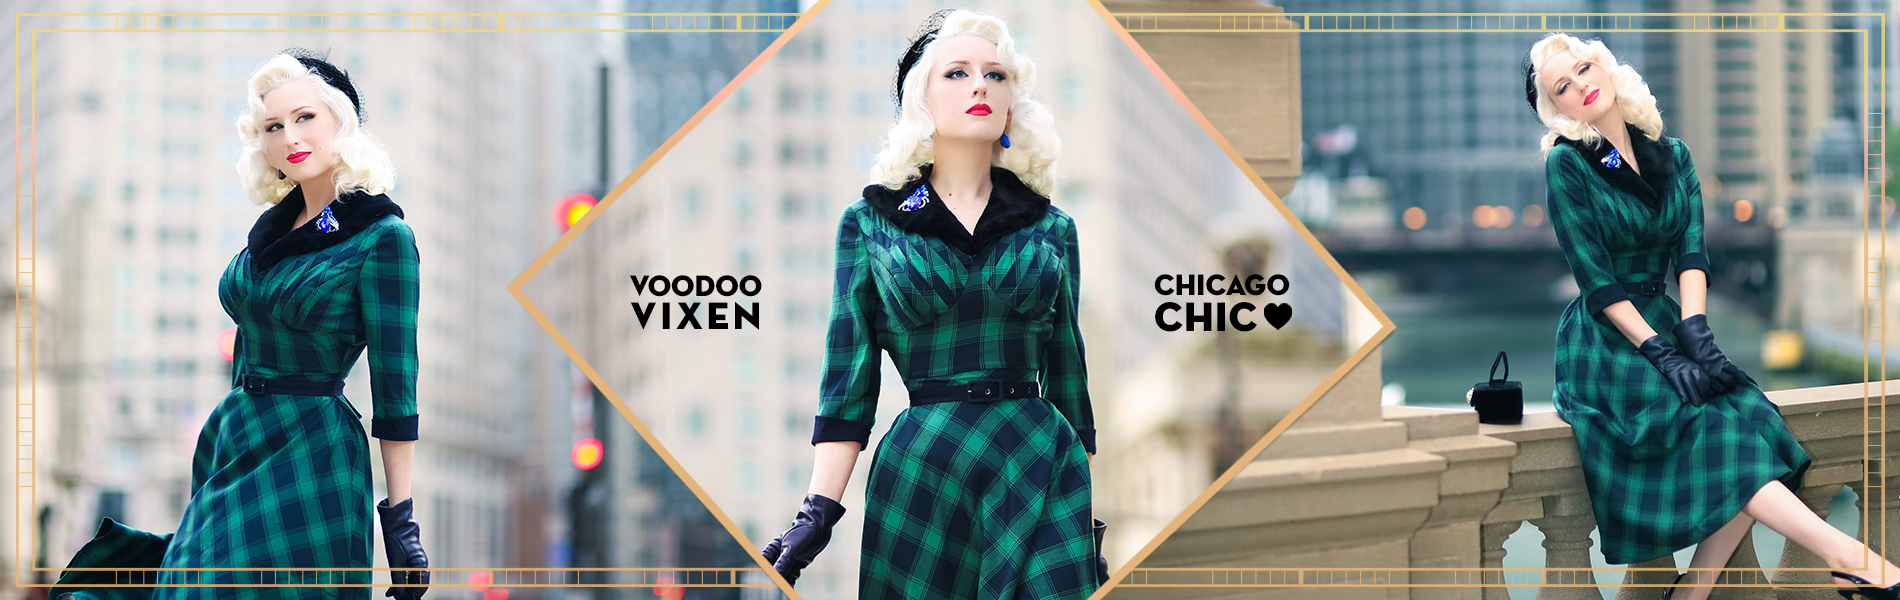 Chicago Chic and Voodoo Vixen Collaboration